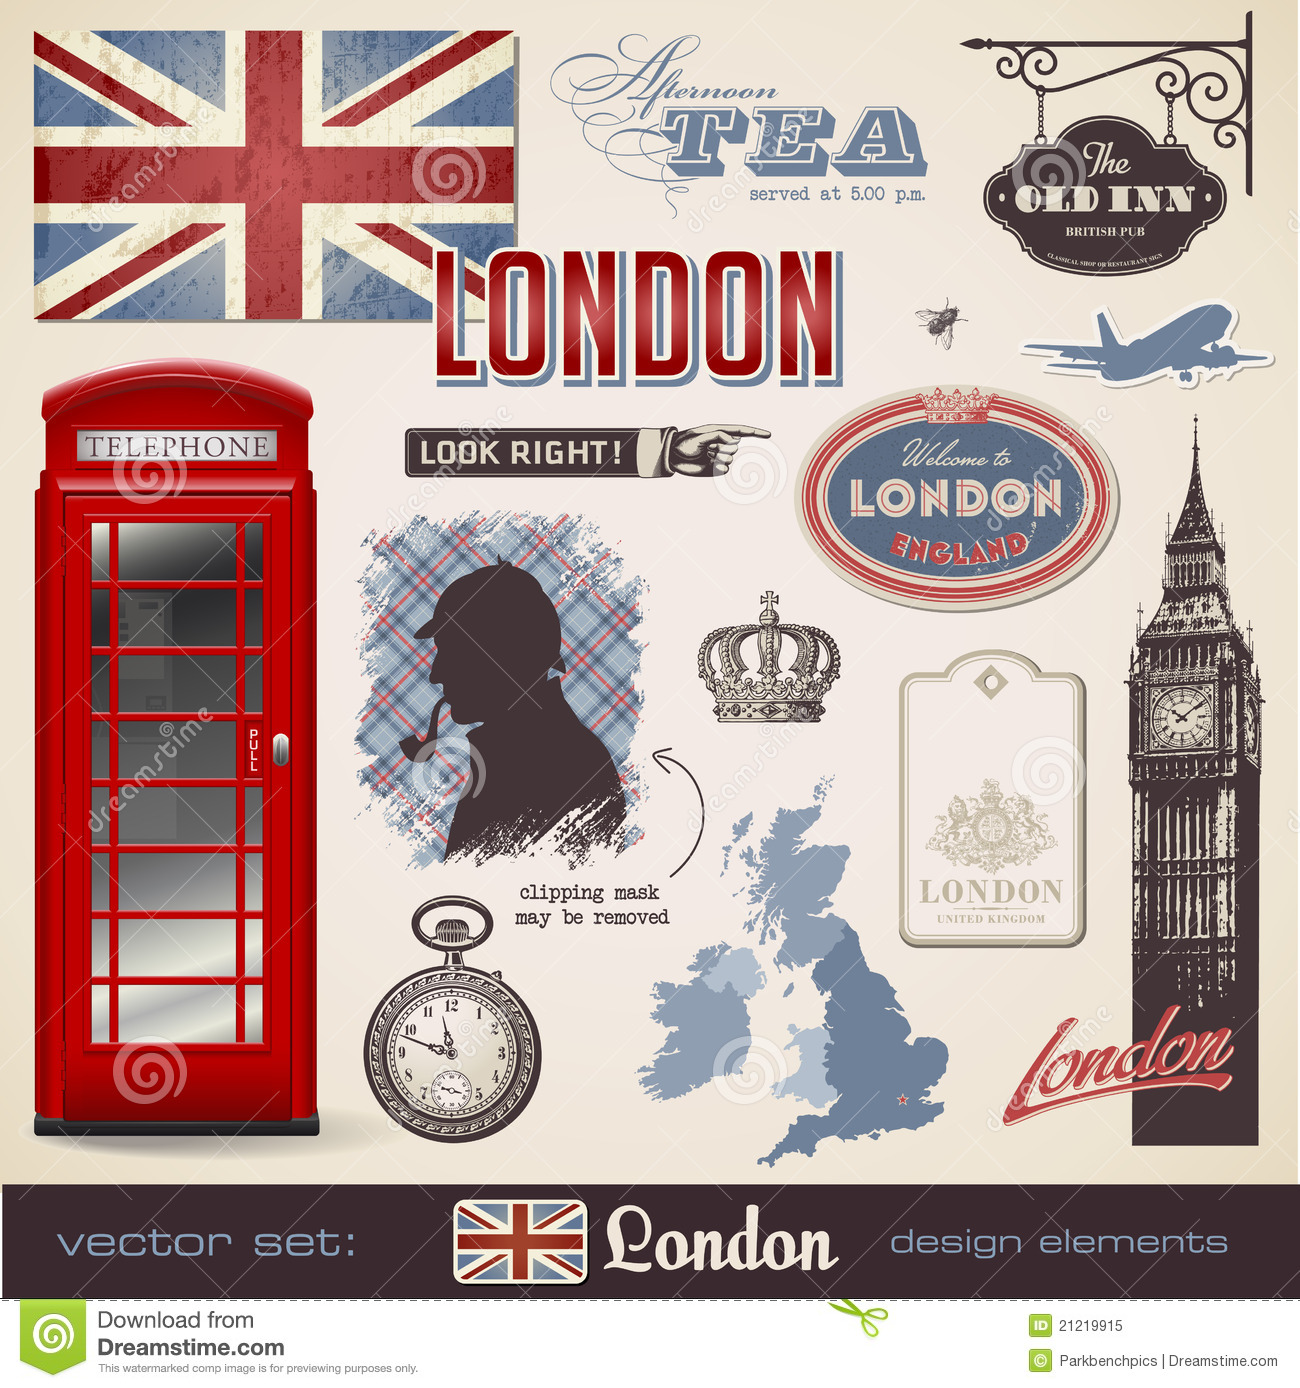 London Design Elements Royalty Free Stock Photo - Image: 21219915